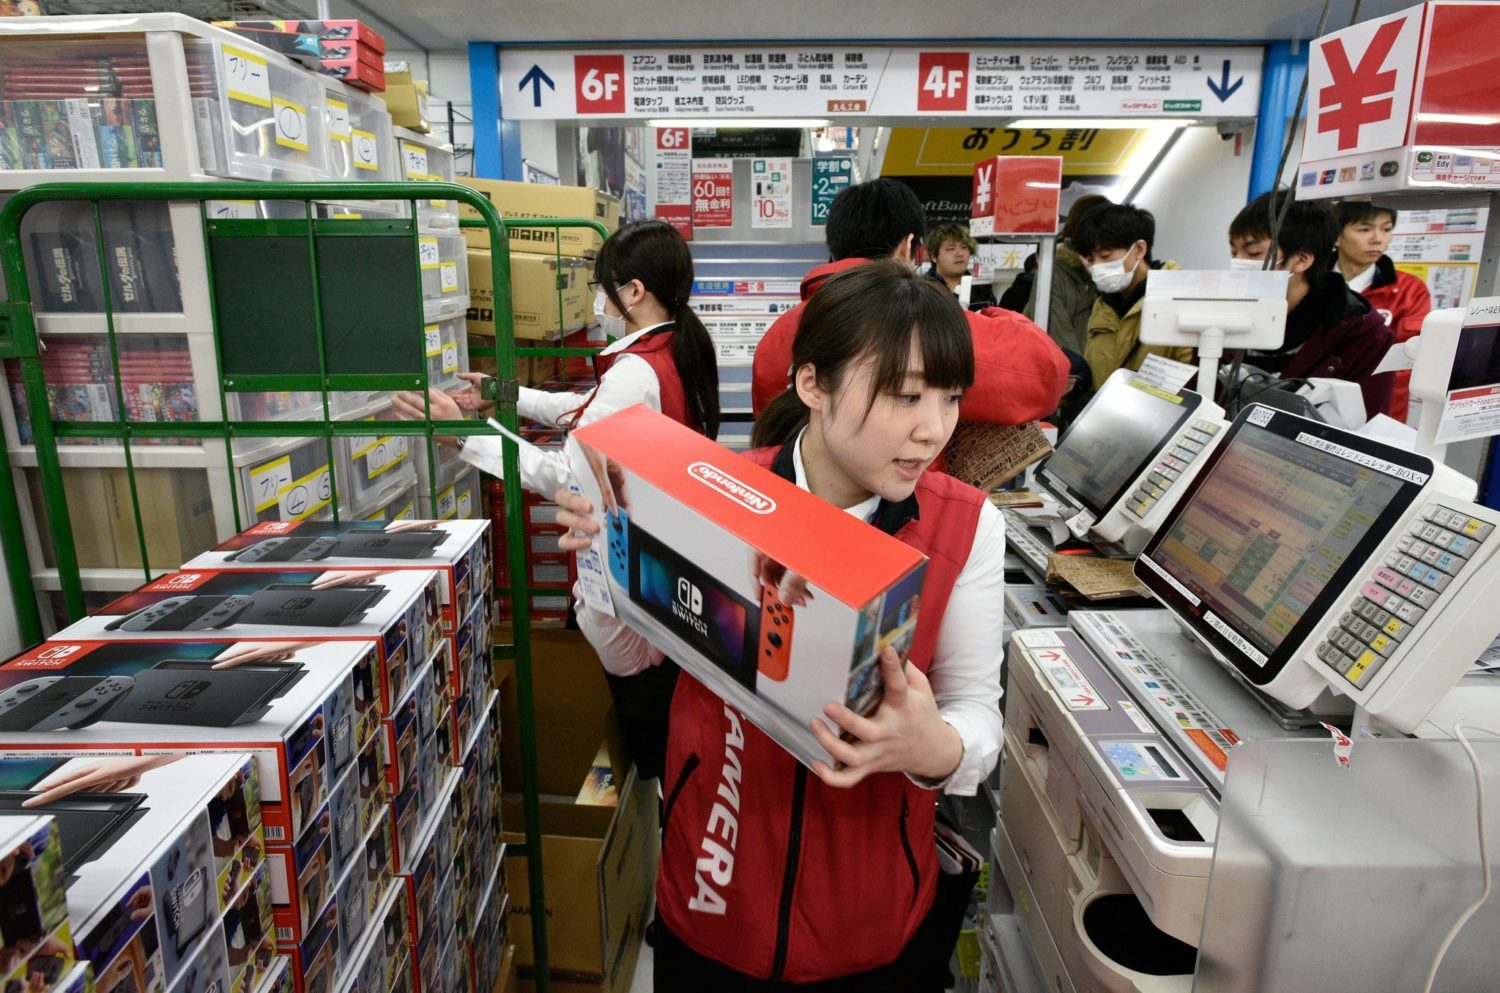 80% Gaming-hardwaremarkt in Japan, dit jaar meer Switches verkocht